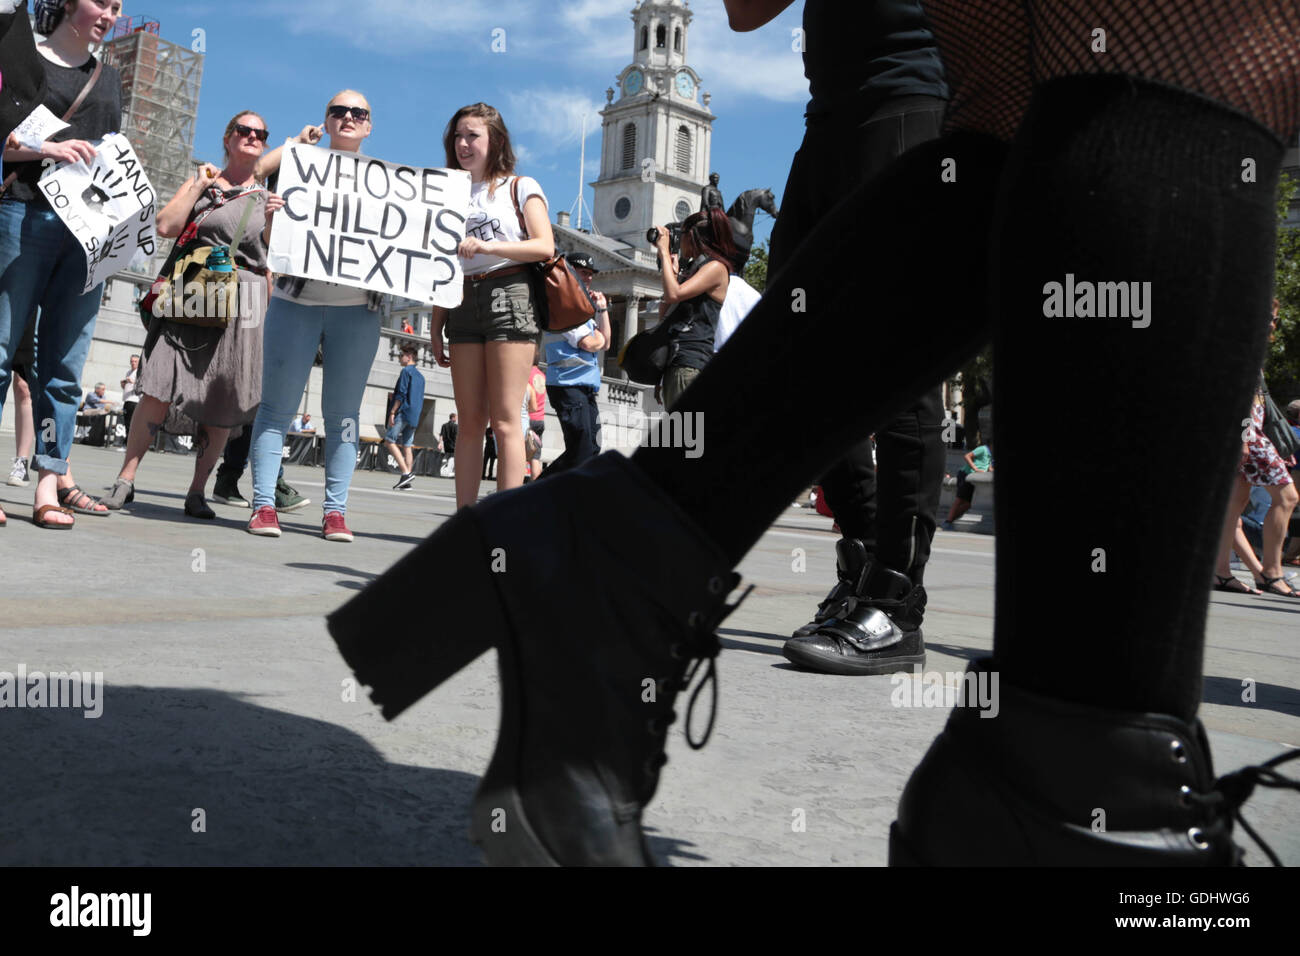 London, UK. 18th July, 2016. Demonstrators protest in Trafalgar square at the shooting of African Americans by U.S - Stock Image